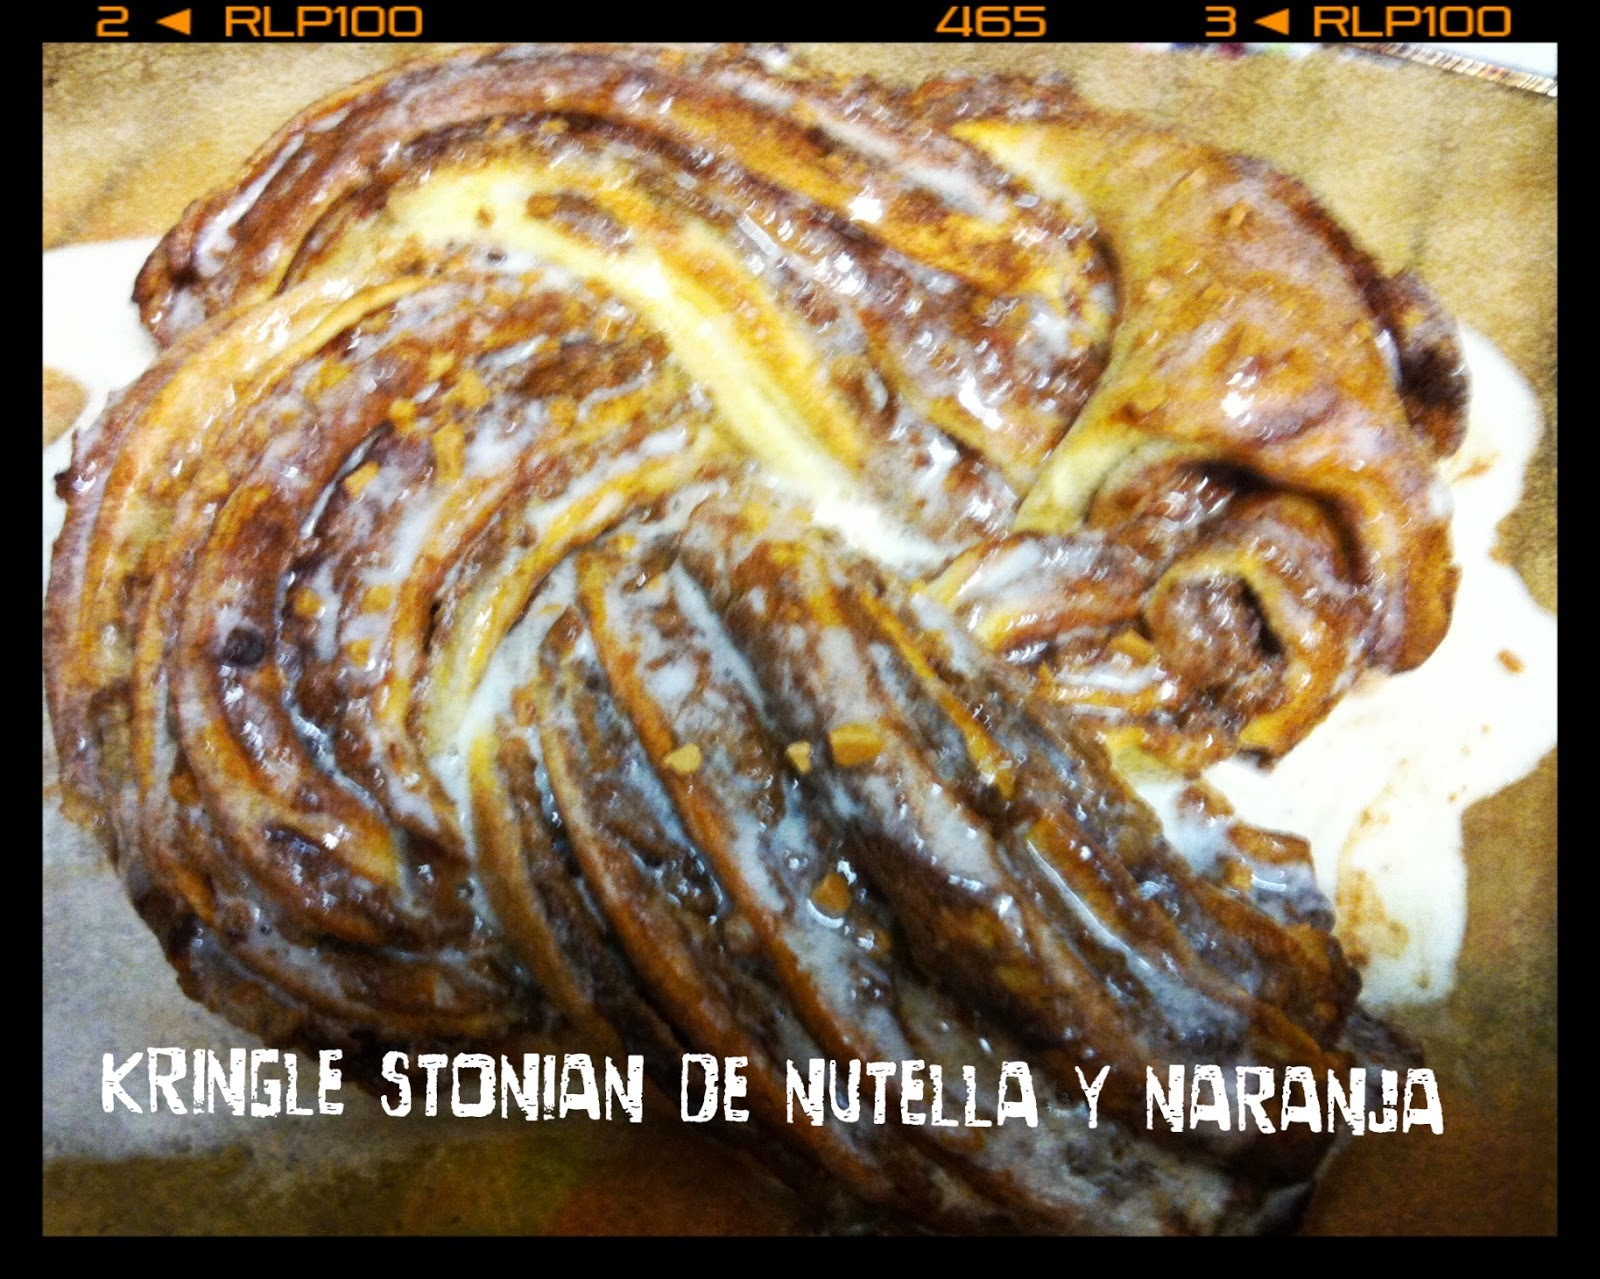 KRINGLE DE NUTELLA Y NARANJA